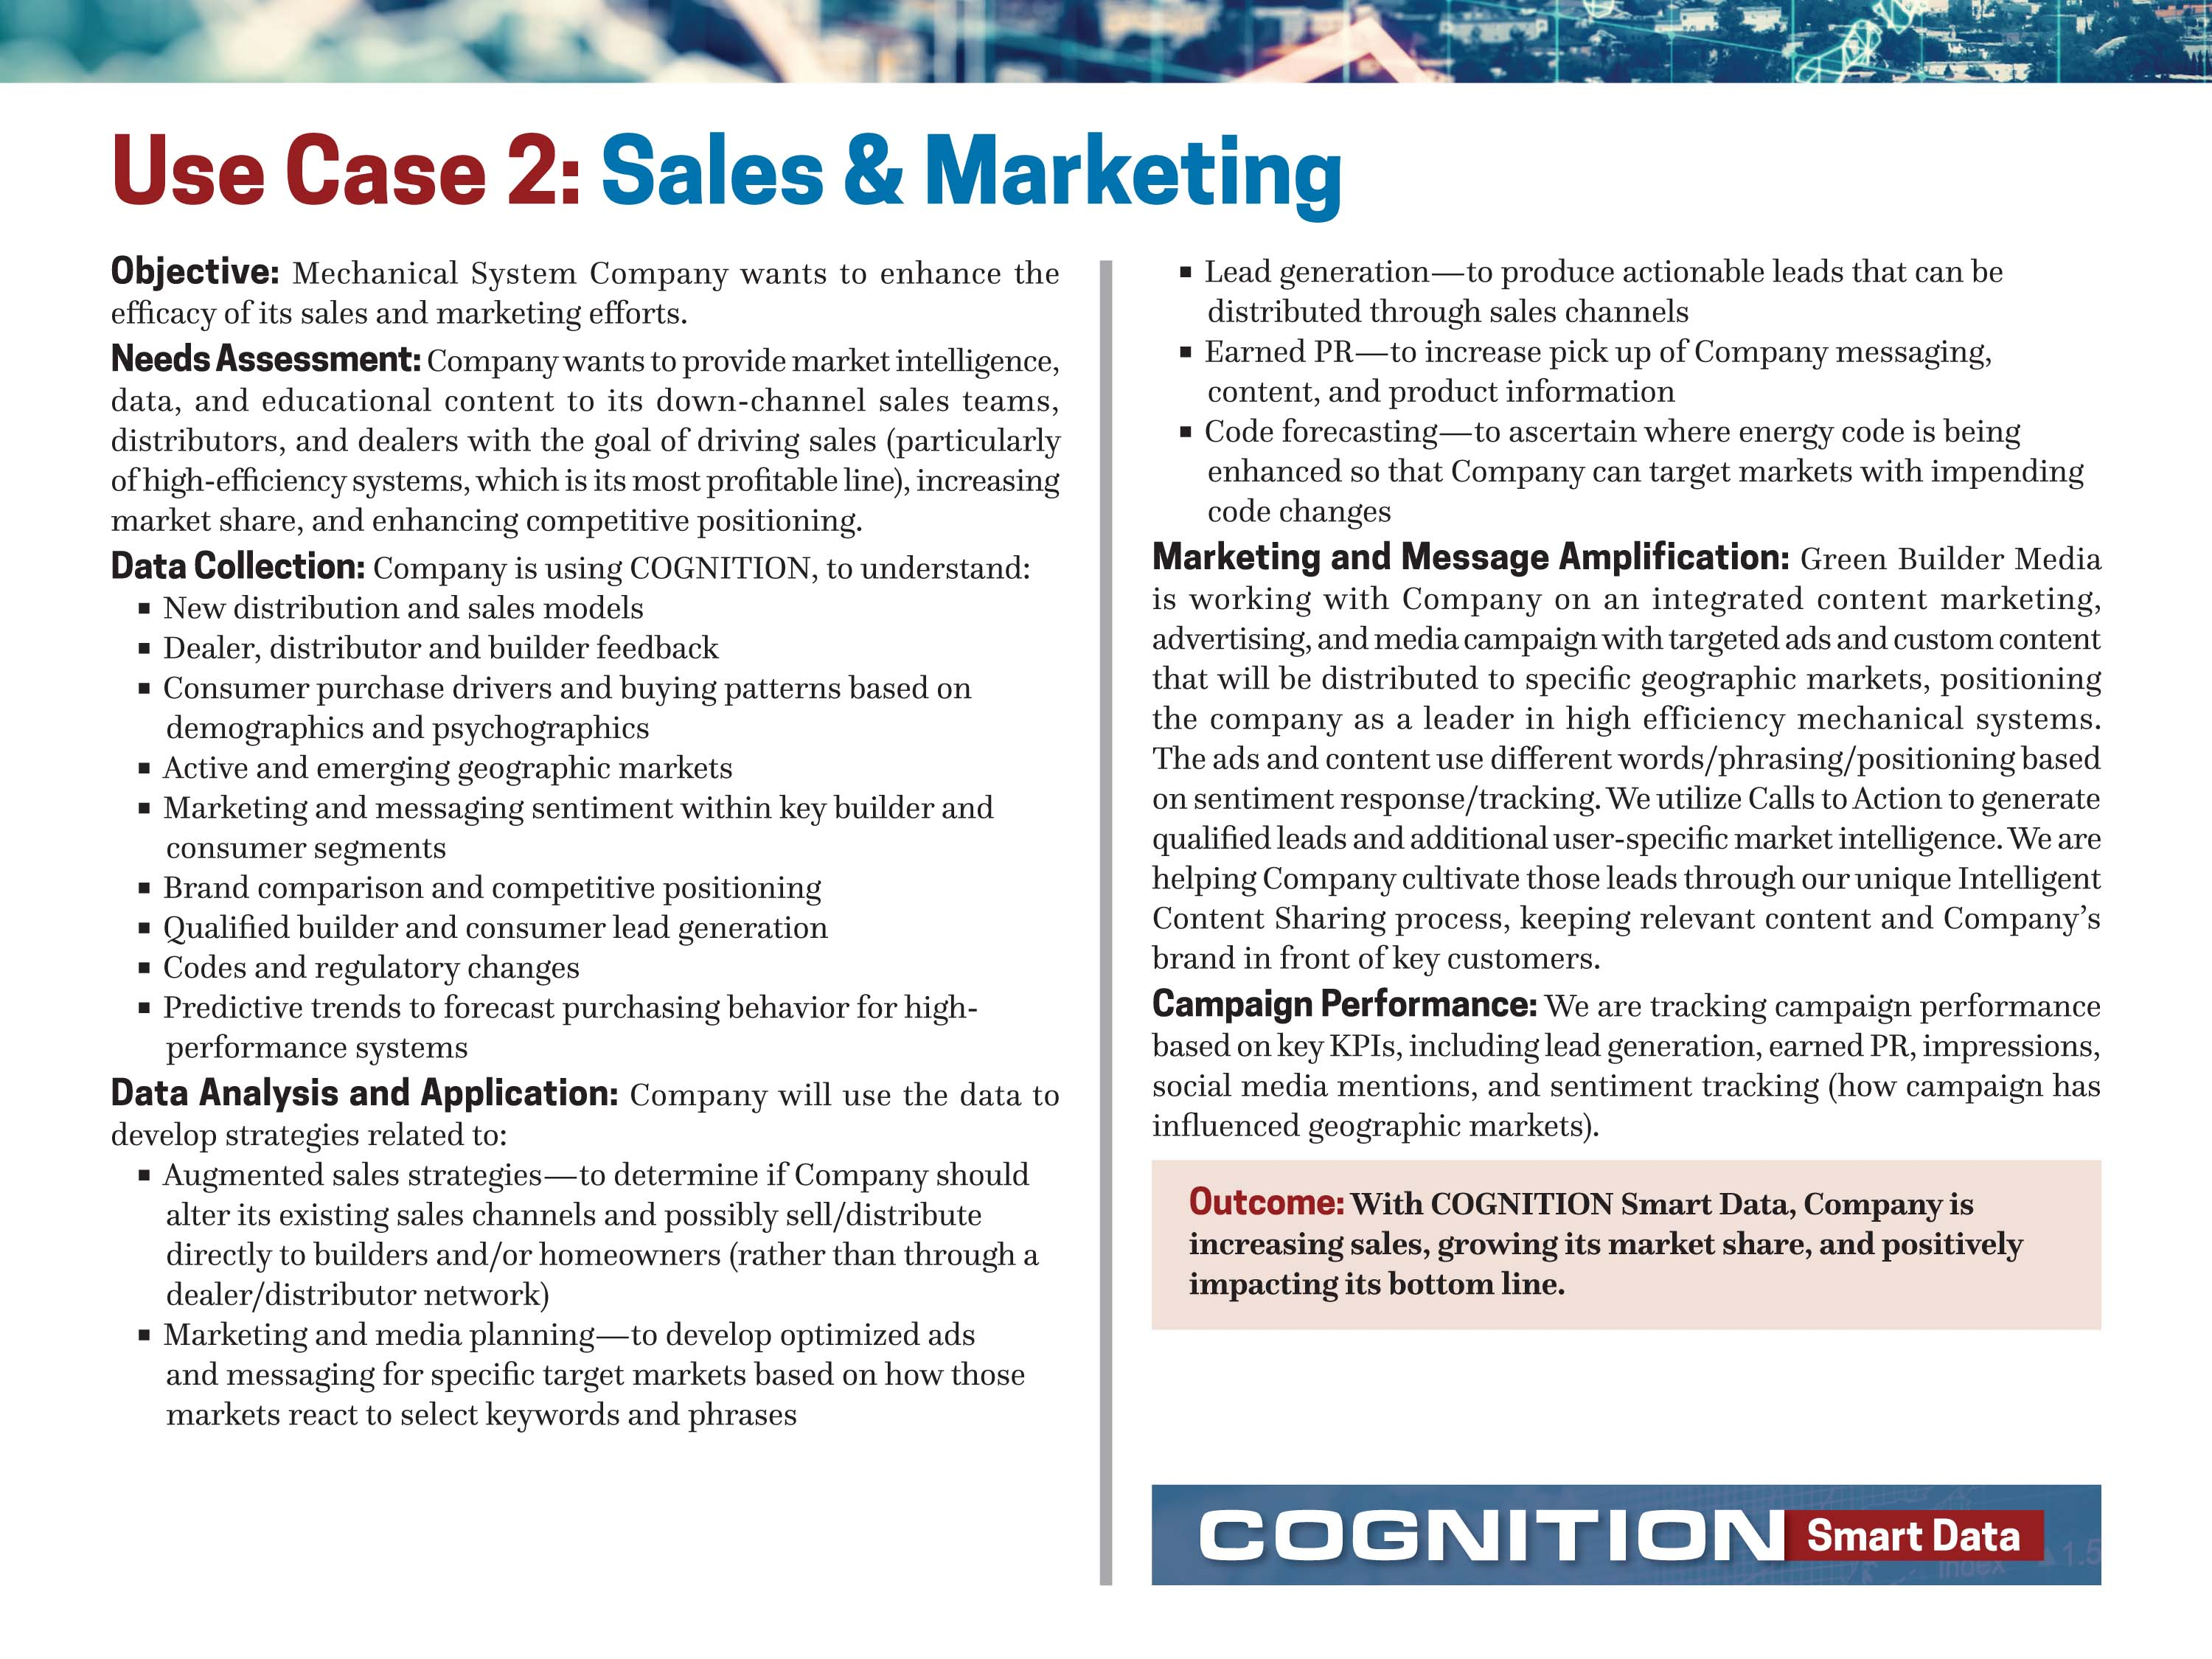 COGNITION Use Cases-2.jpg